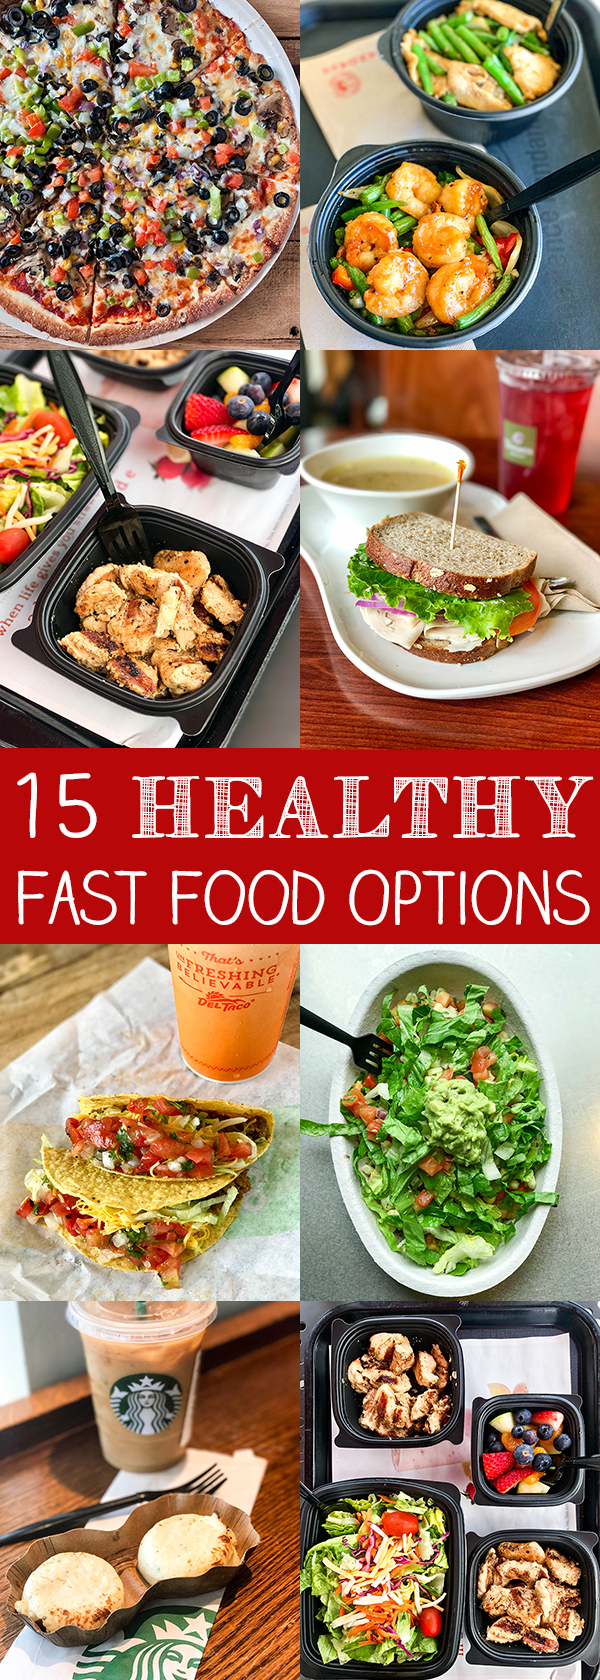 Healthy Choices When Eating Fast Food